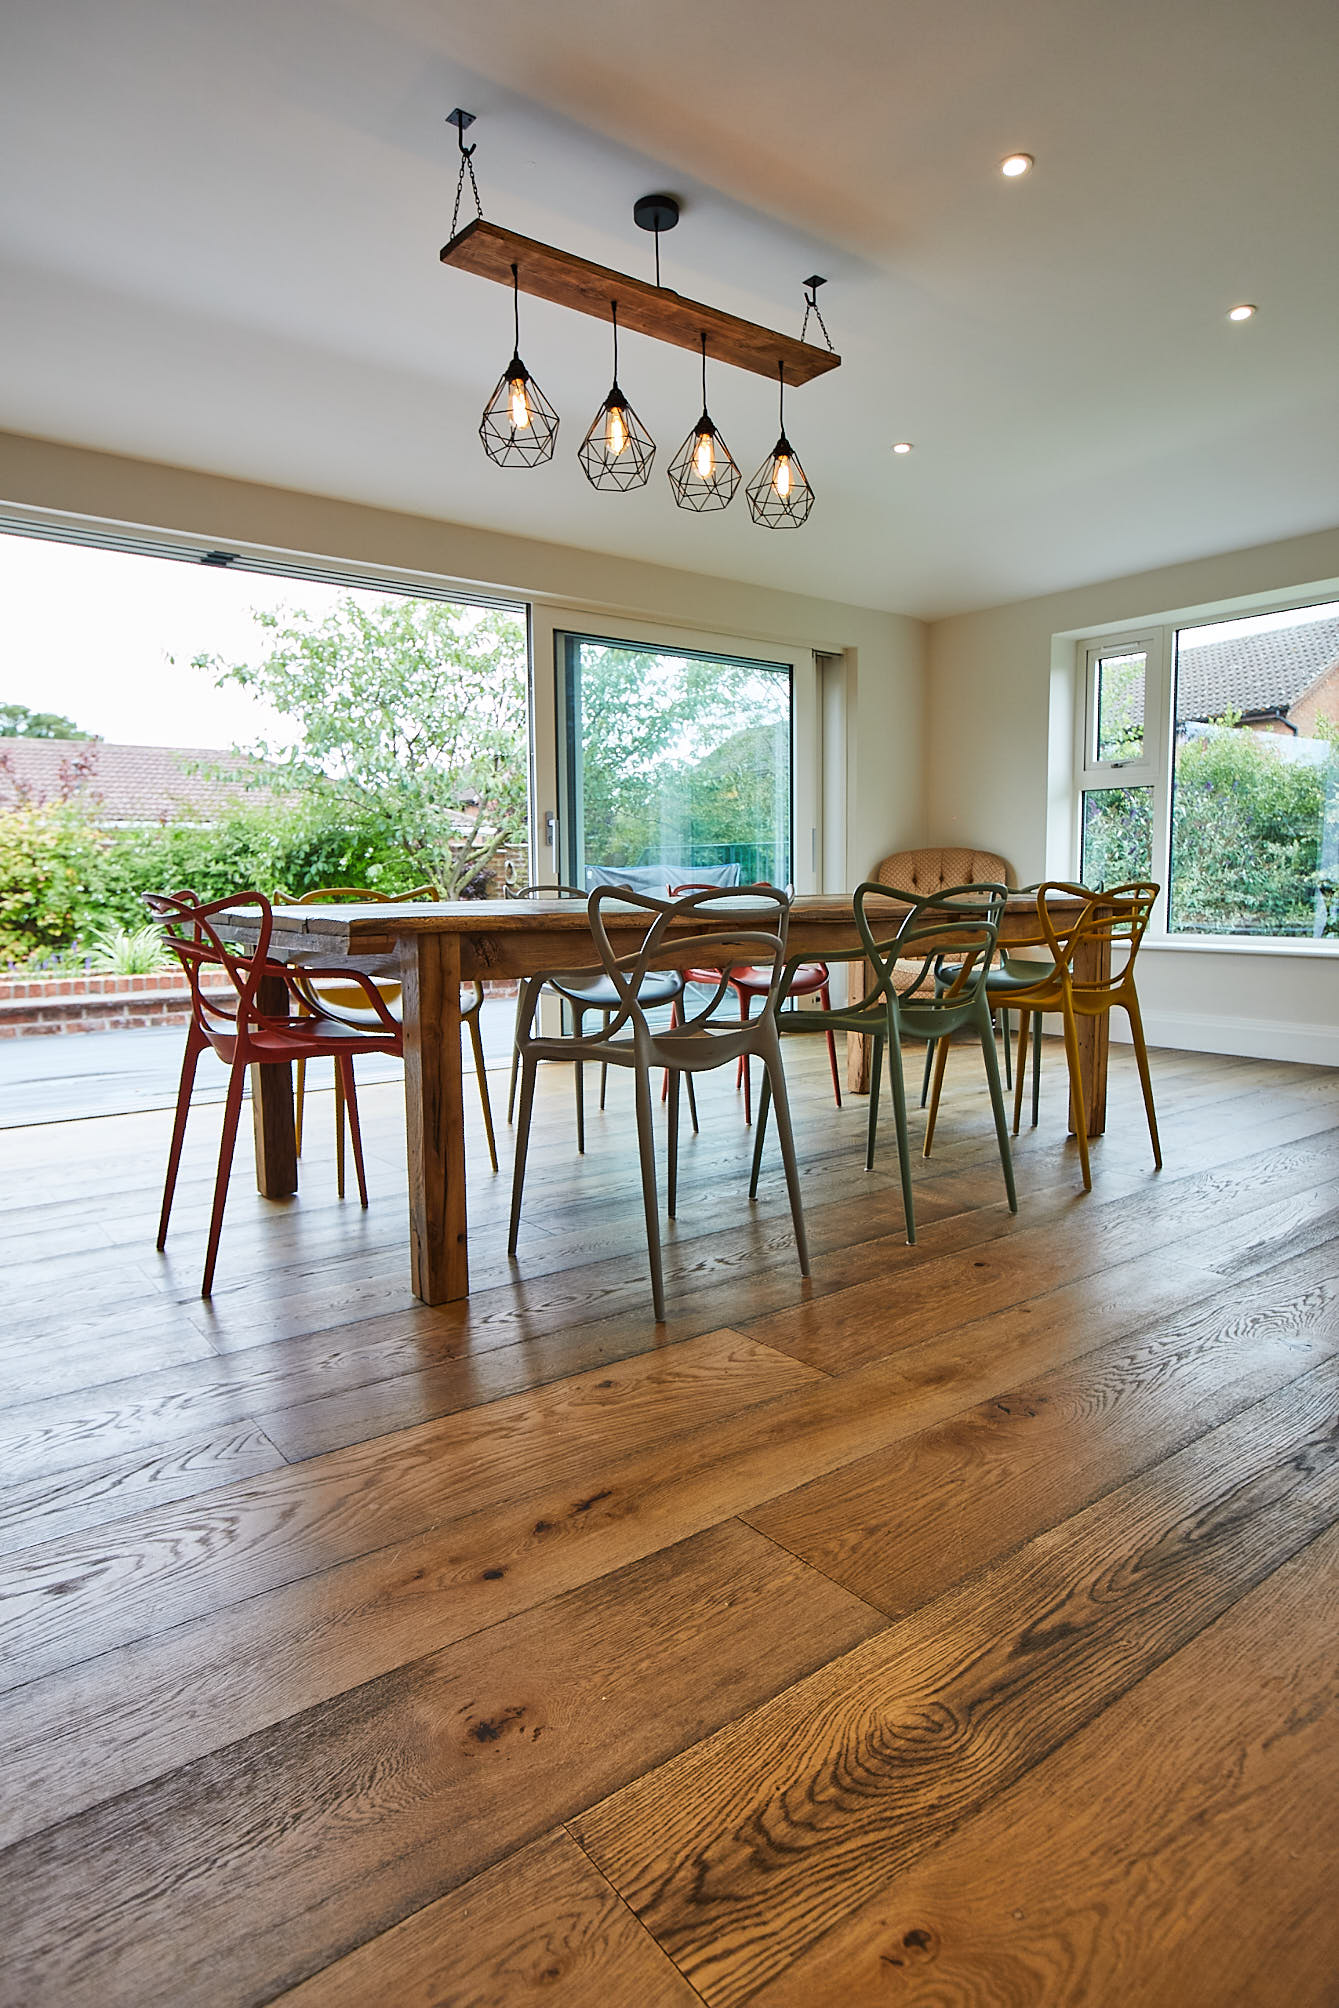 Reclaimed oak dining table sits on oak flooring